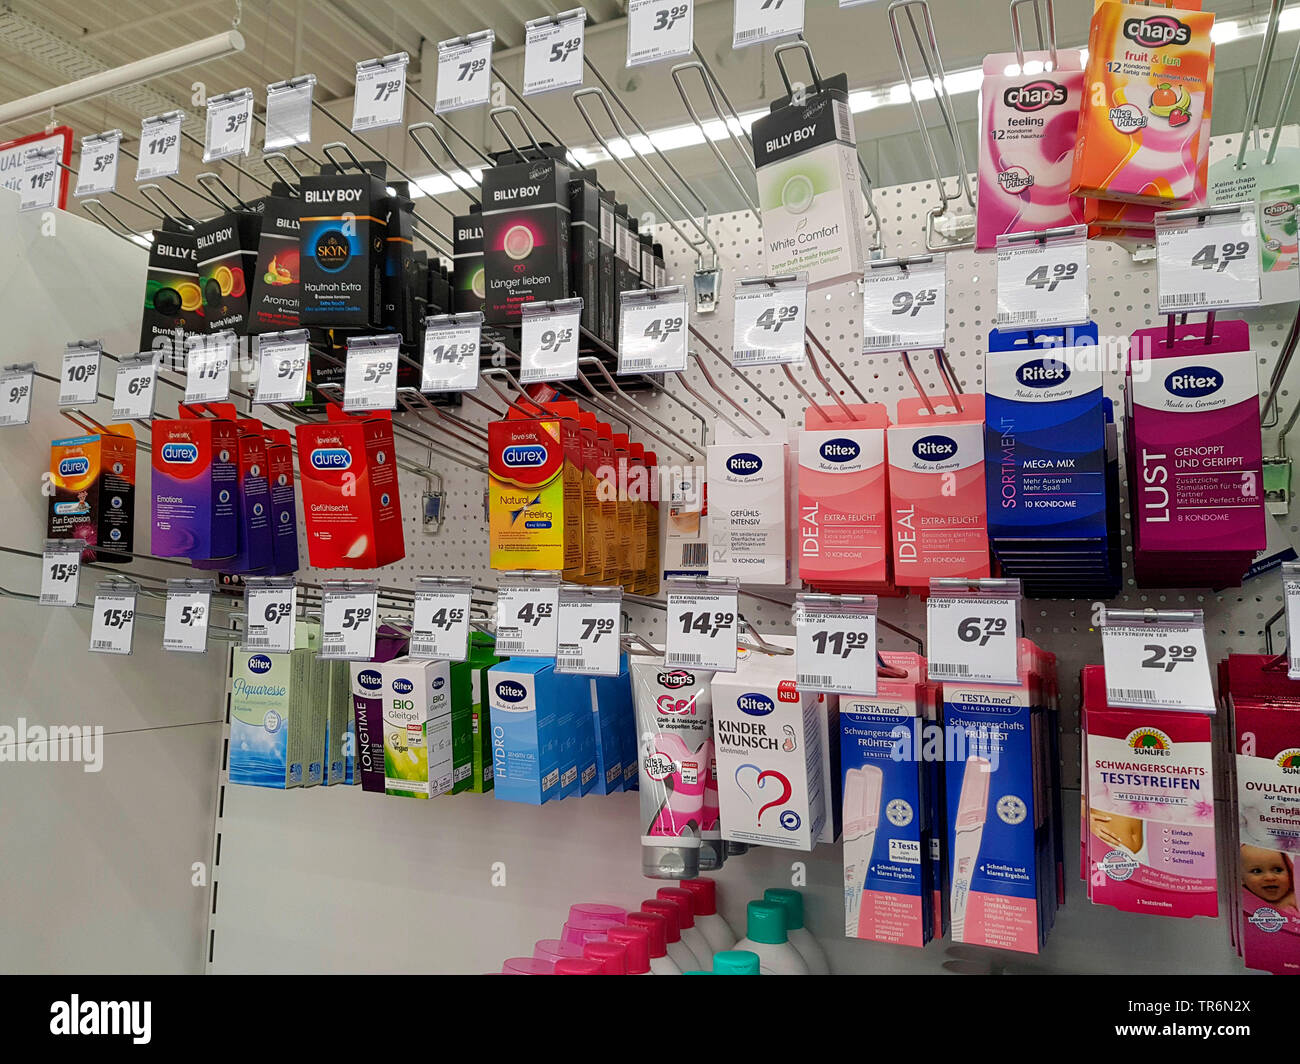 assortment of condoms, glide gel and pregnancy test in a supermarket, Germany - Stock Image